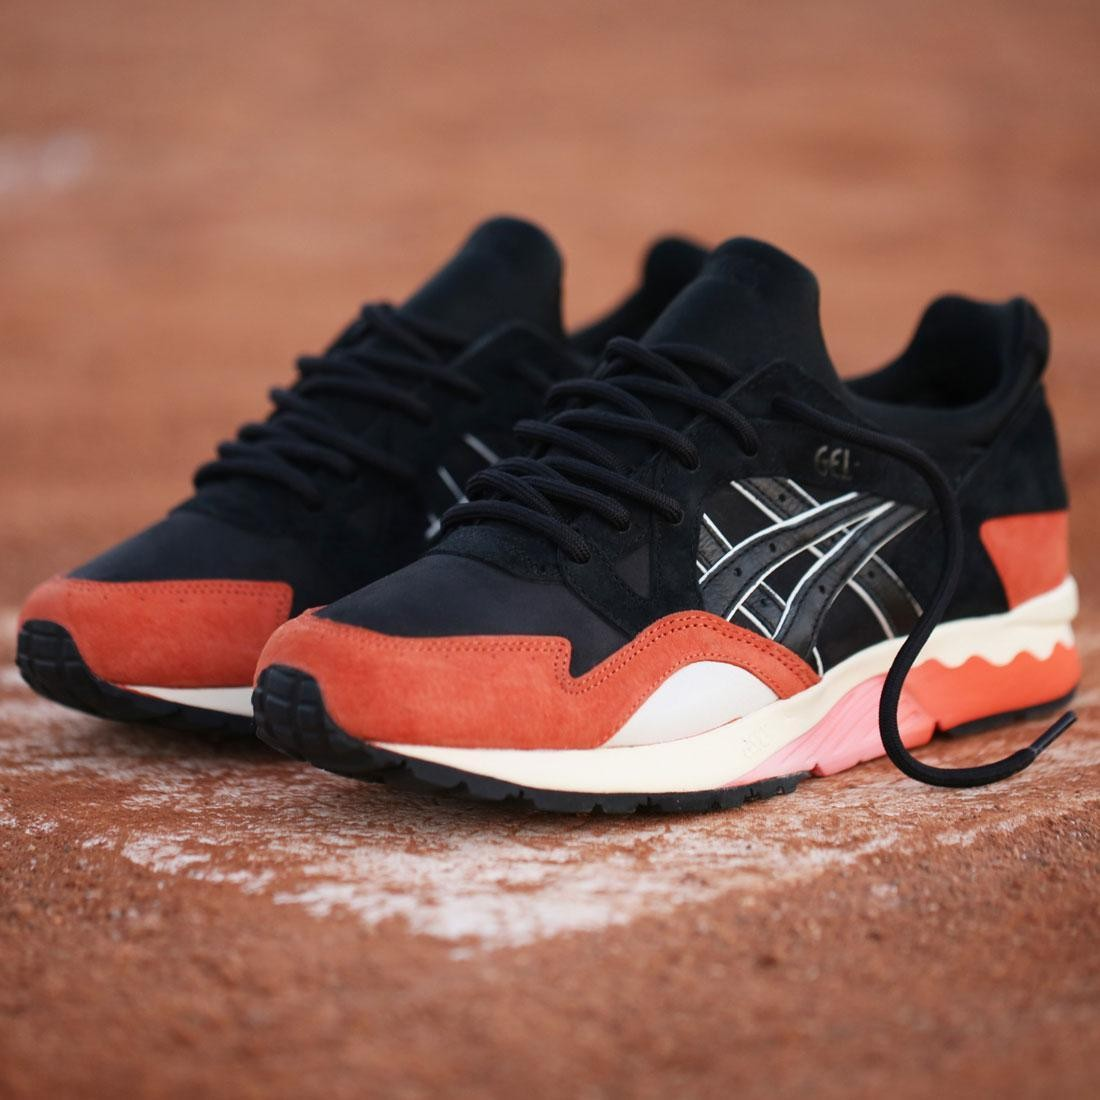 BAIT x Asics Gel Lyte V Bay Pack - Misfits (black   giants orange) 307f8d093f6b